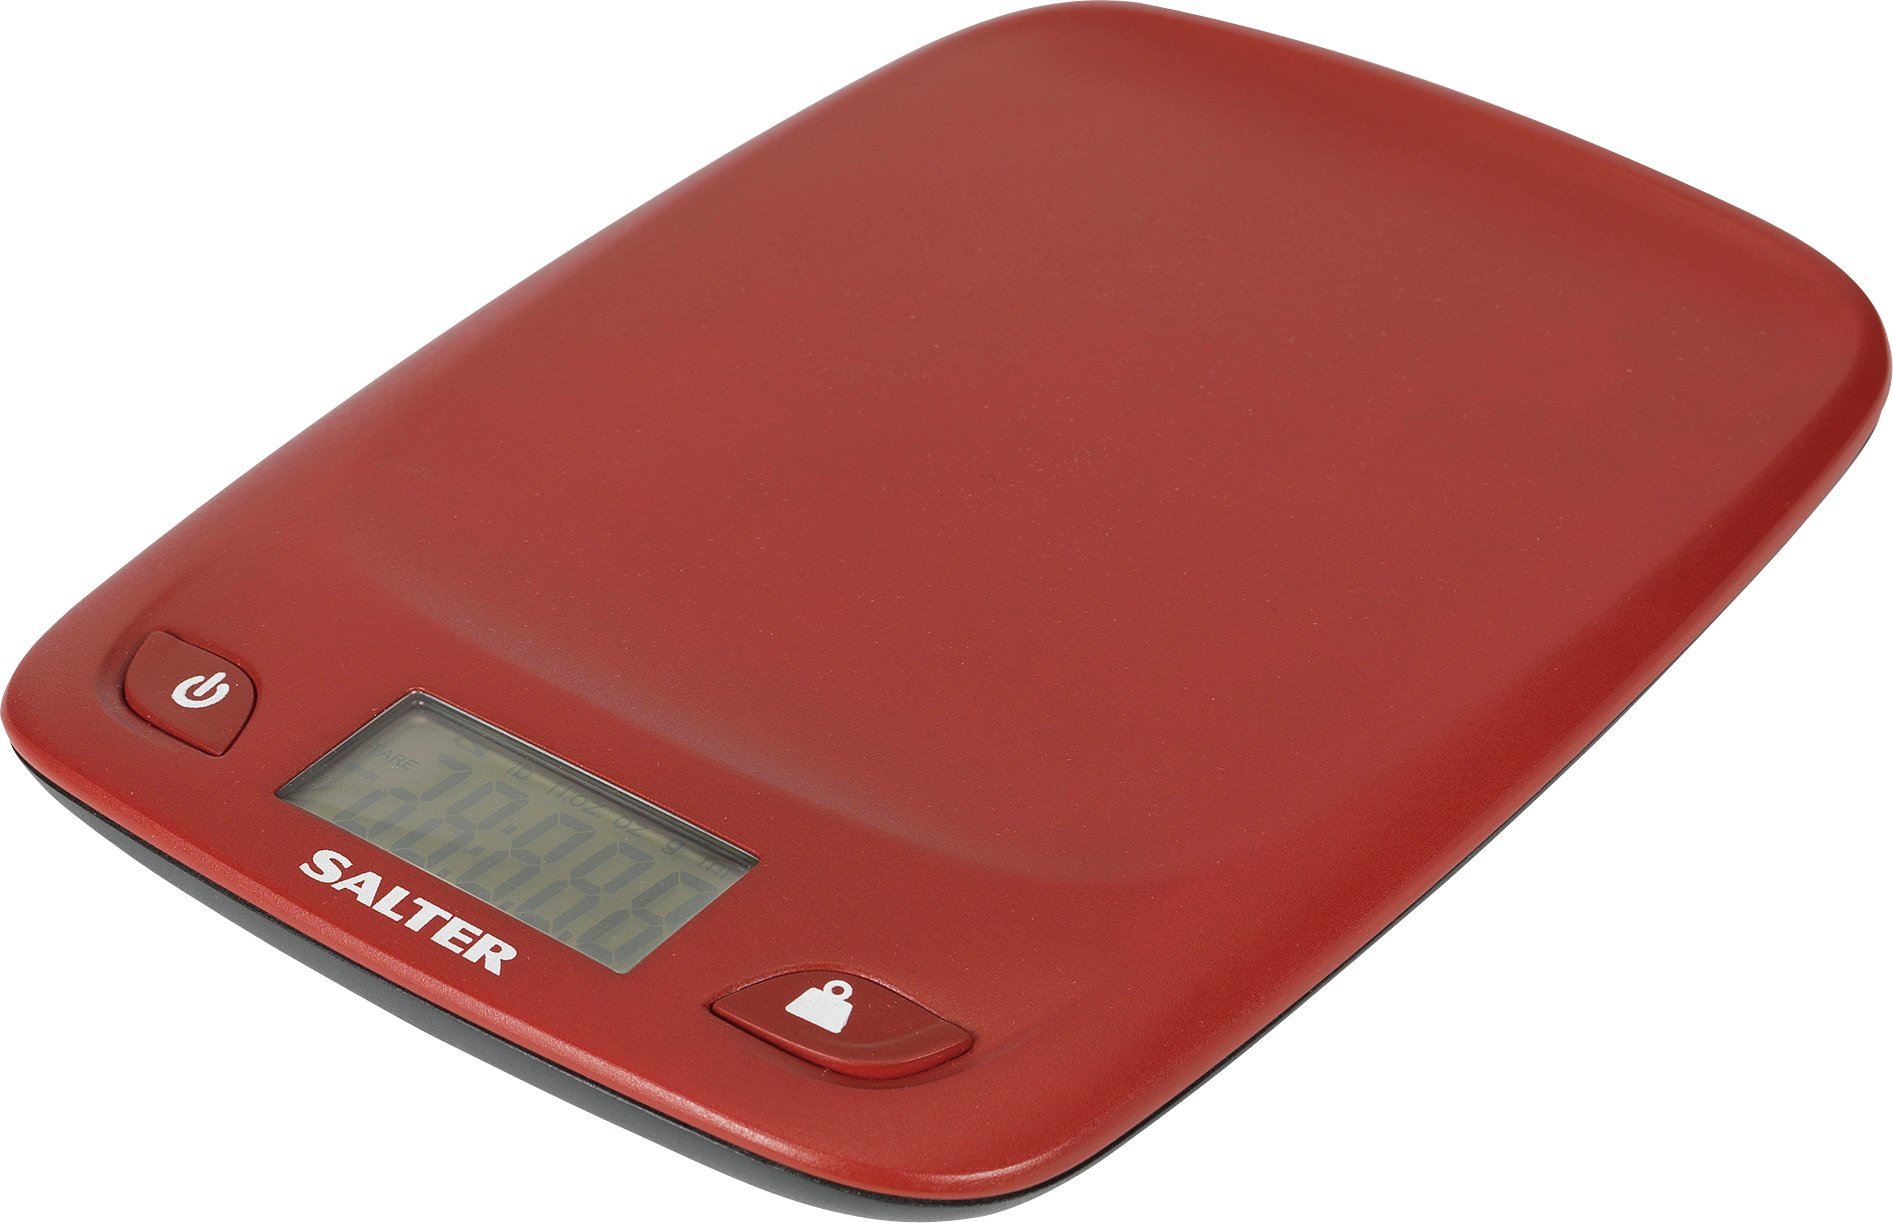 salter-ultra-slim-scale-red